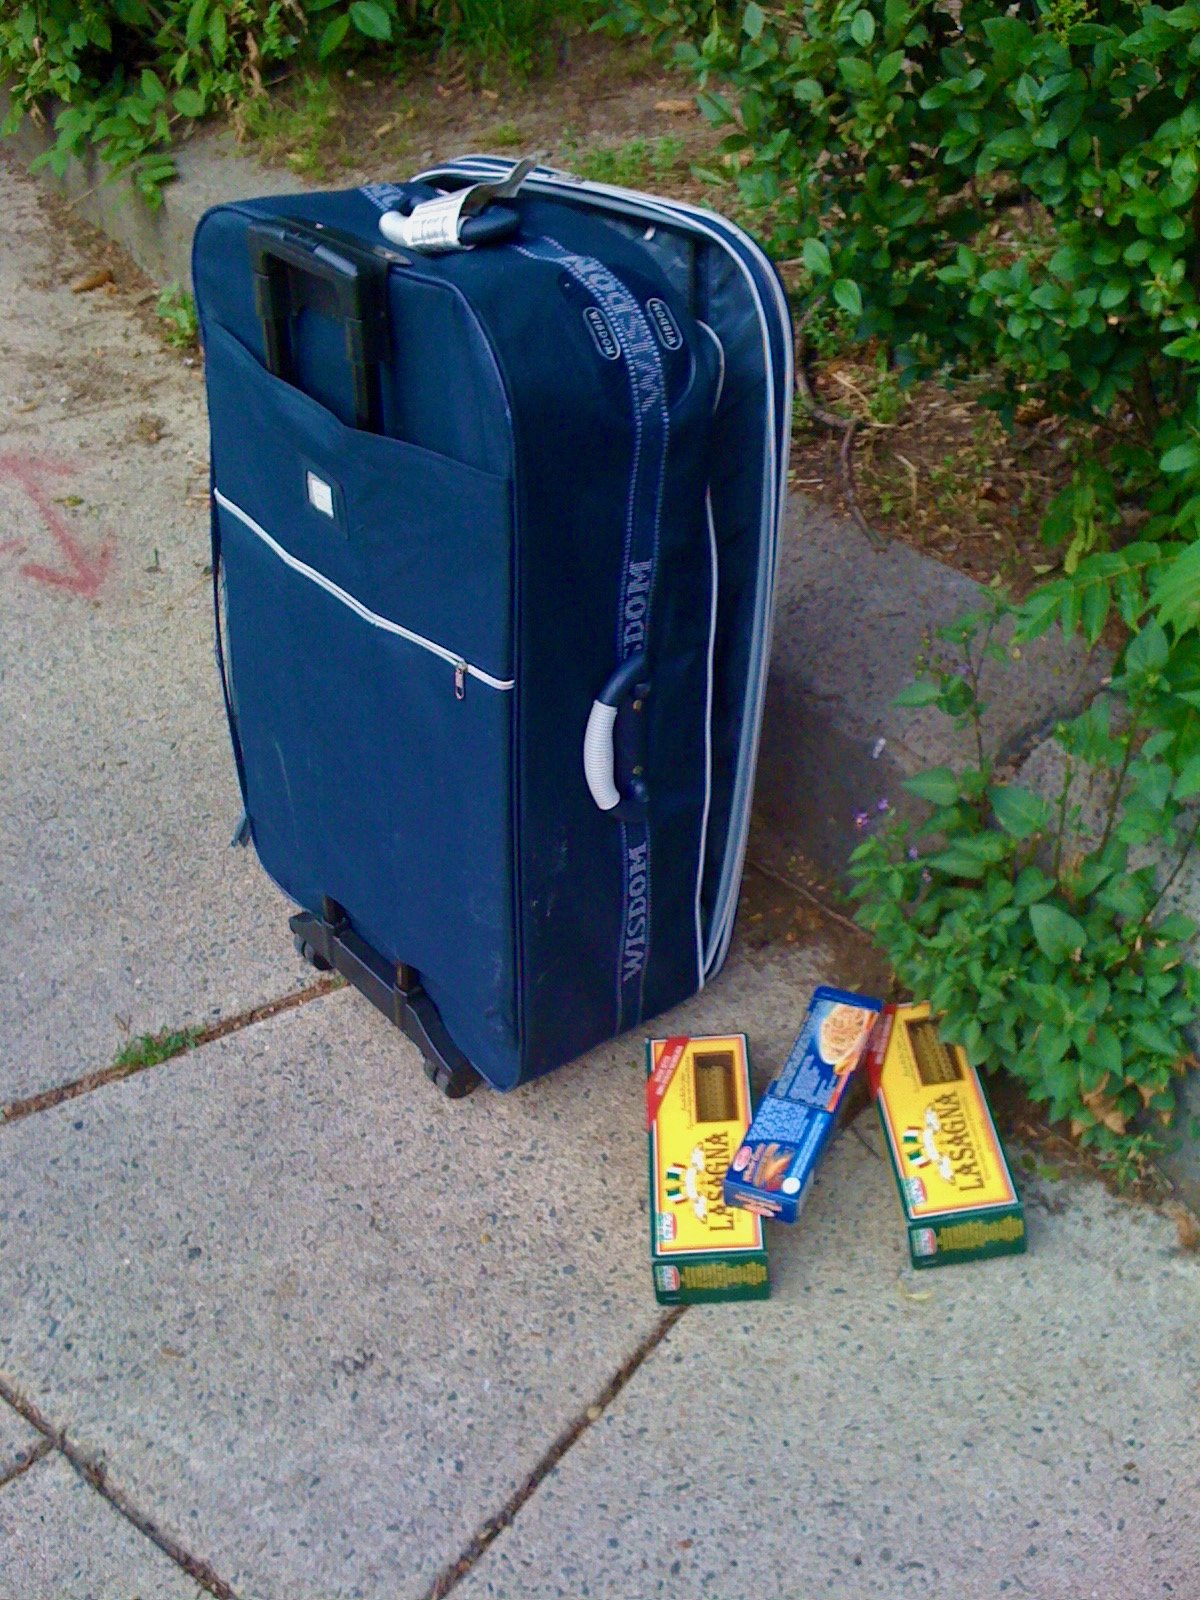 Whats Happening Here - Suitcase and Pasta on the Sidewalk